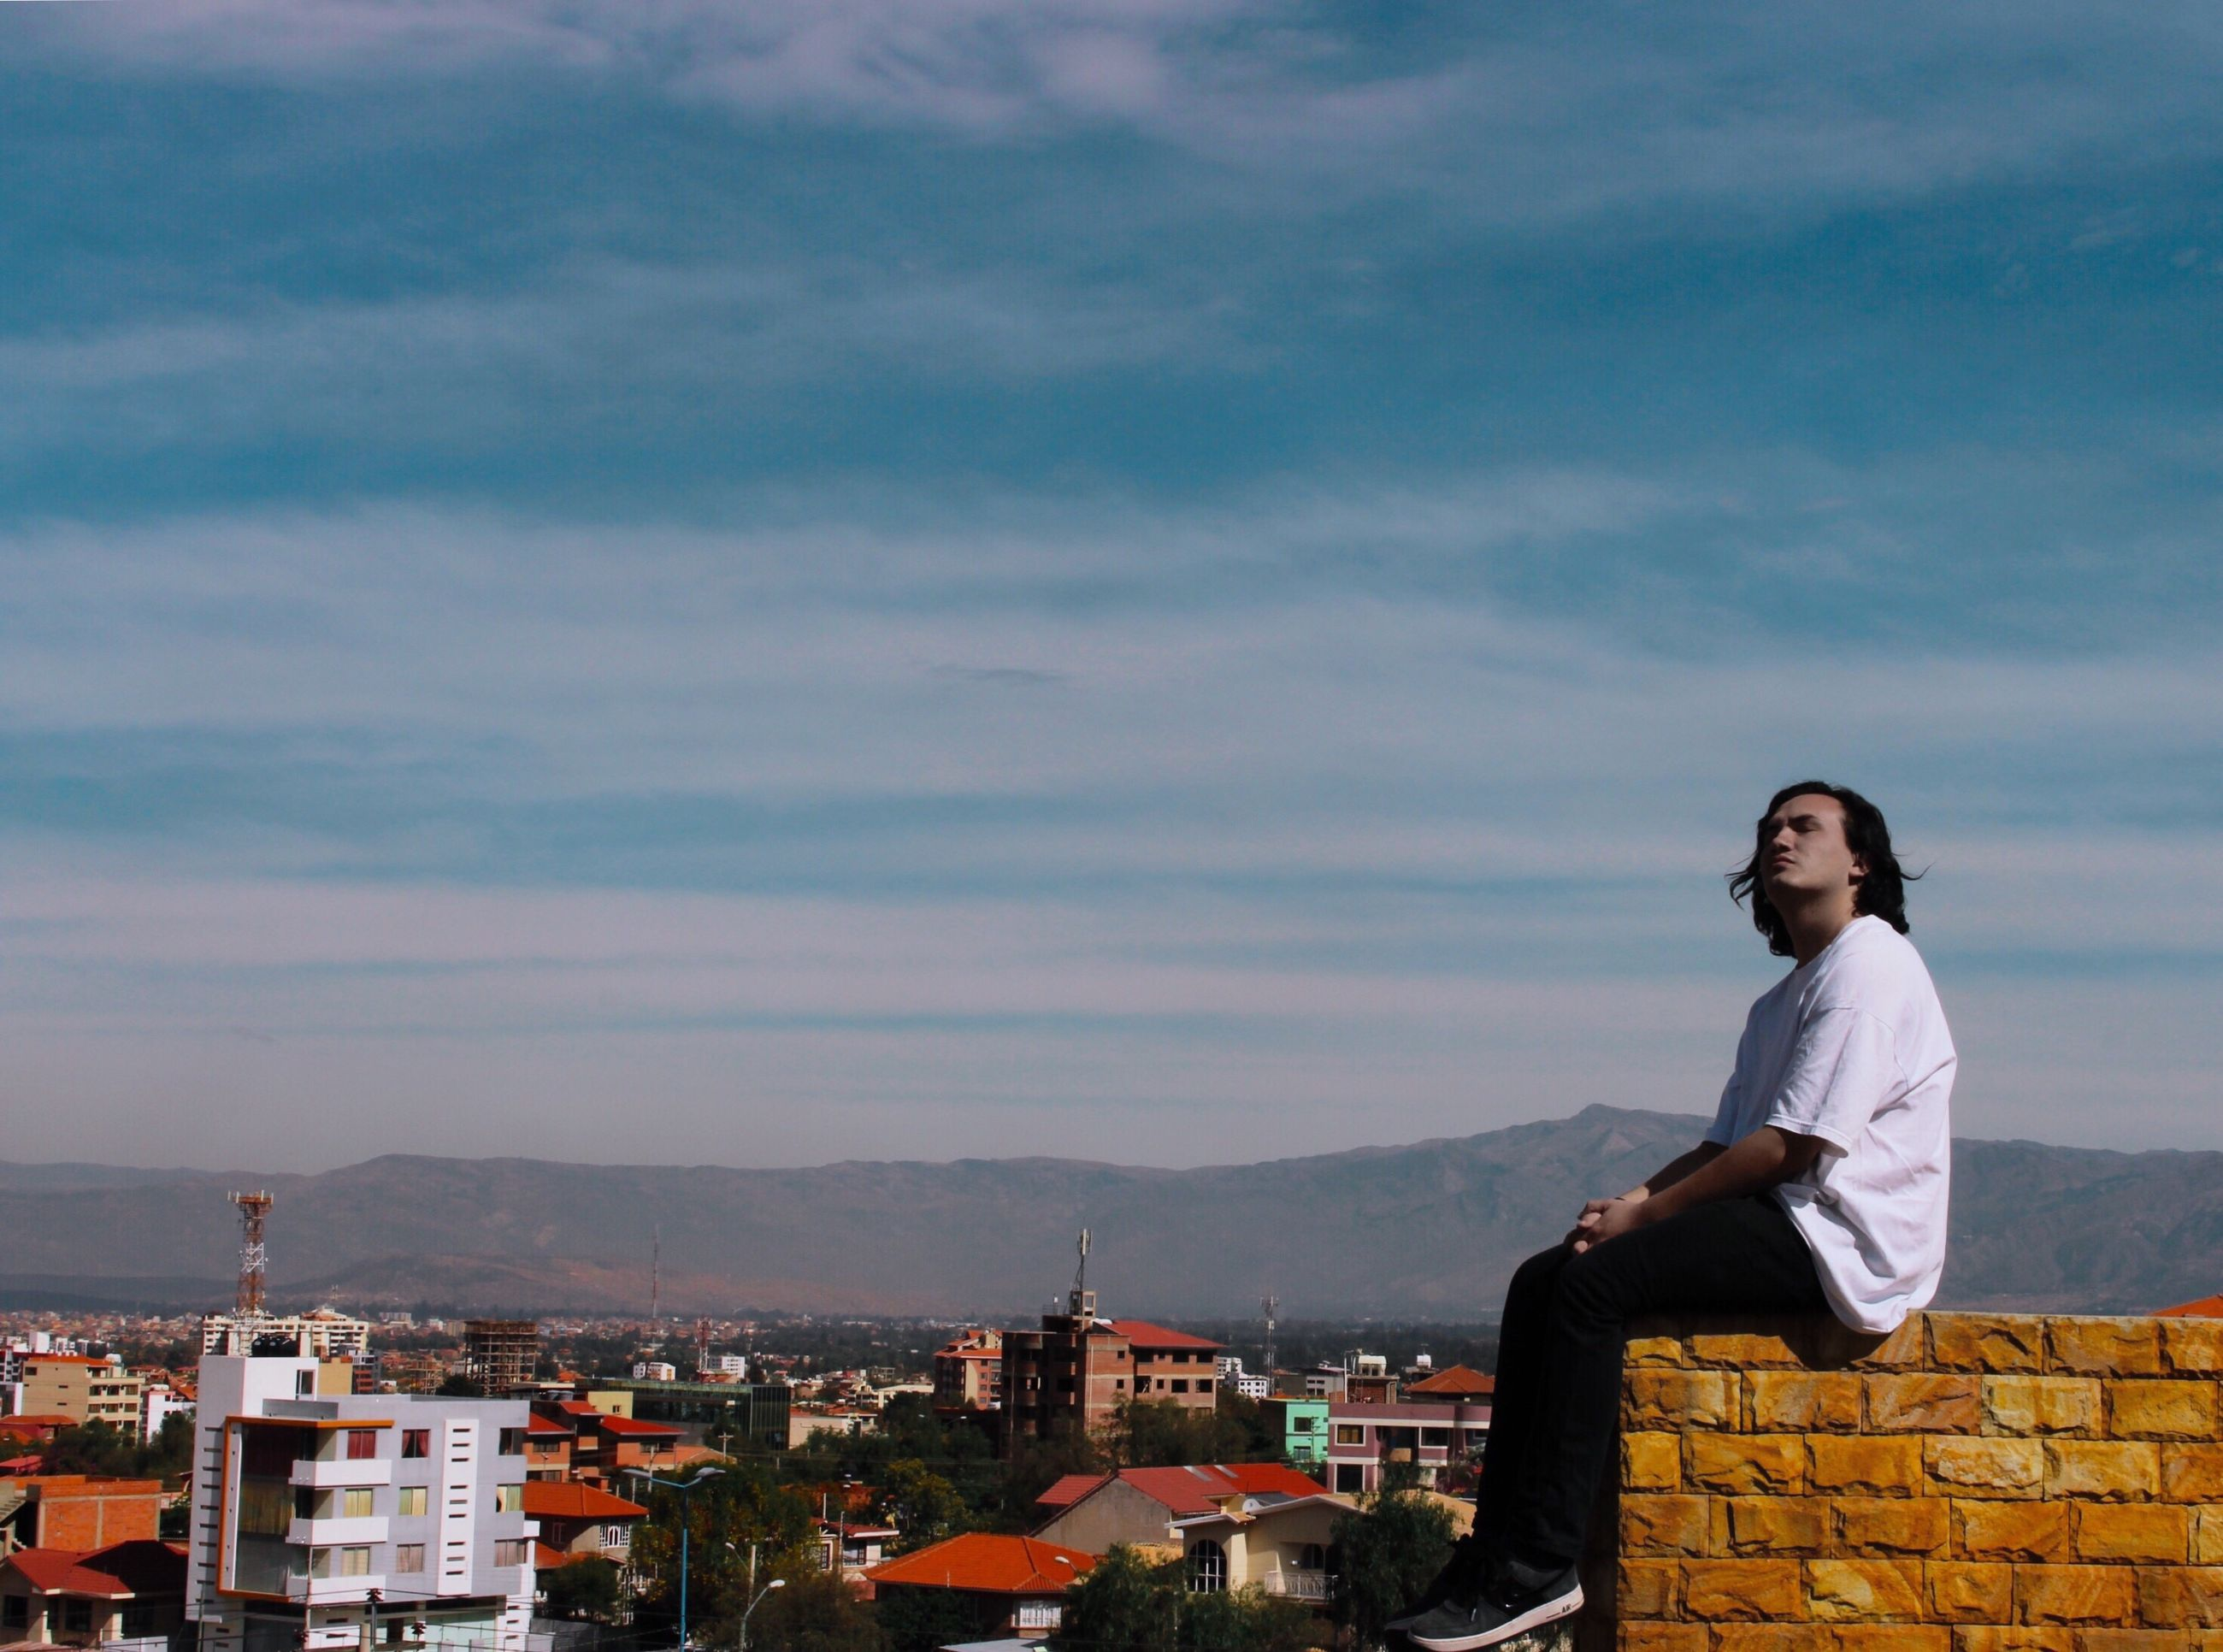 architecture, built structure, cloud - sky, building exterior, real people, sky, lifestyles, one person, outdoors, young women, cityscape, young adult, day, city